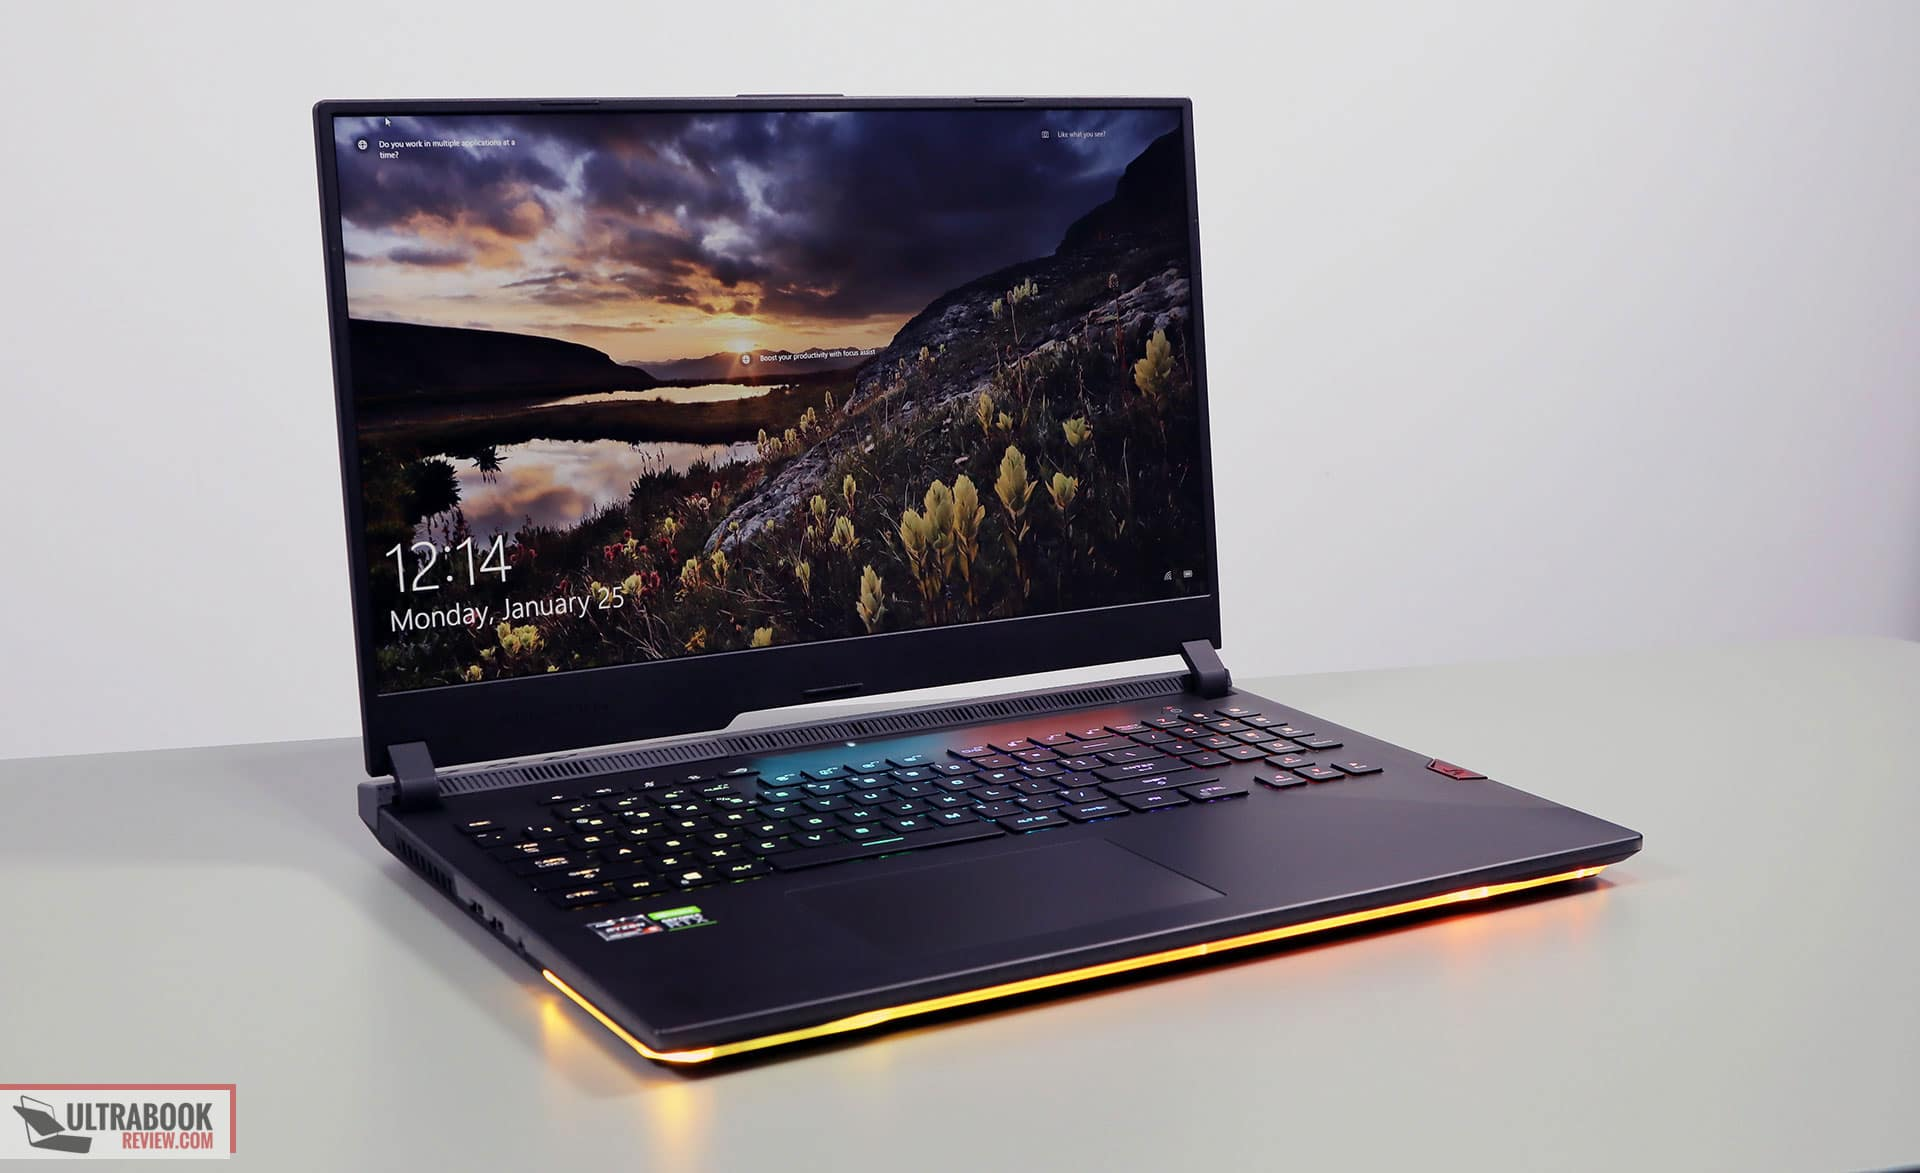 2021 Asus ROG Strix Scar 17 G733QS review